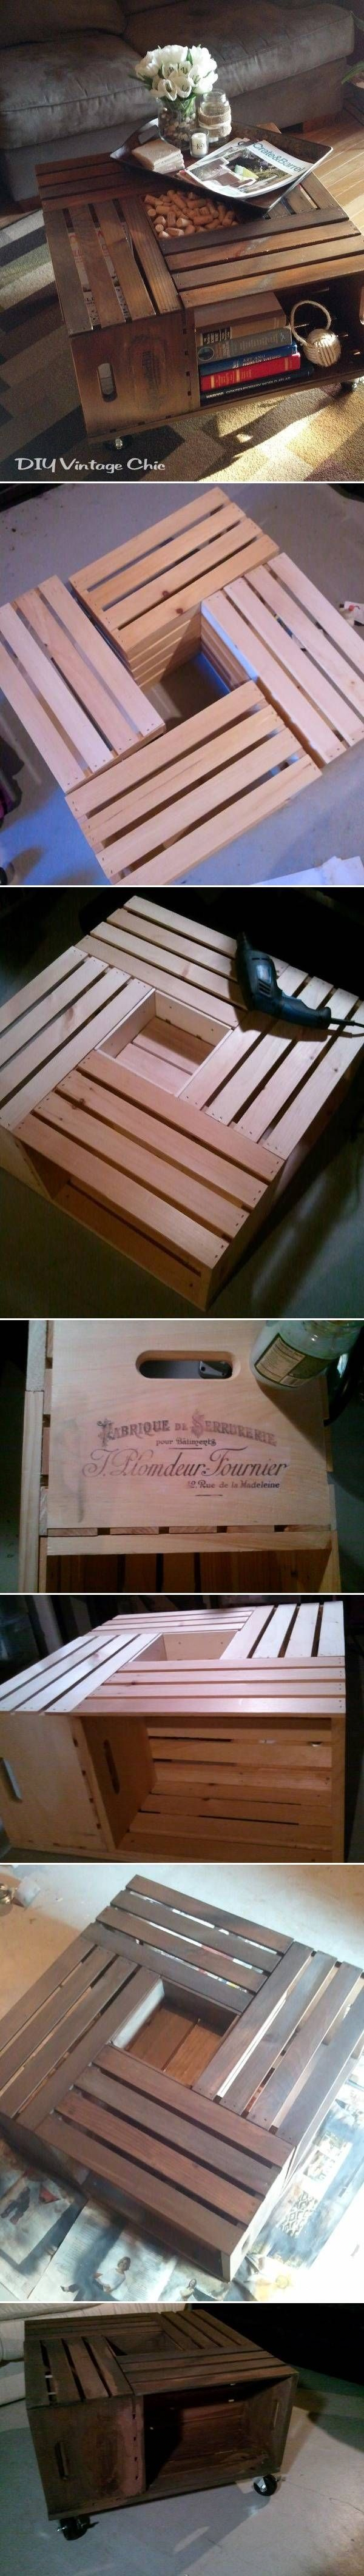 DIY Wine Crate Table Pictures, Photos, and Images for Facebook, Tumblr, Pinterest, and Twitter